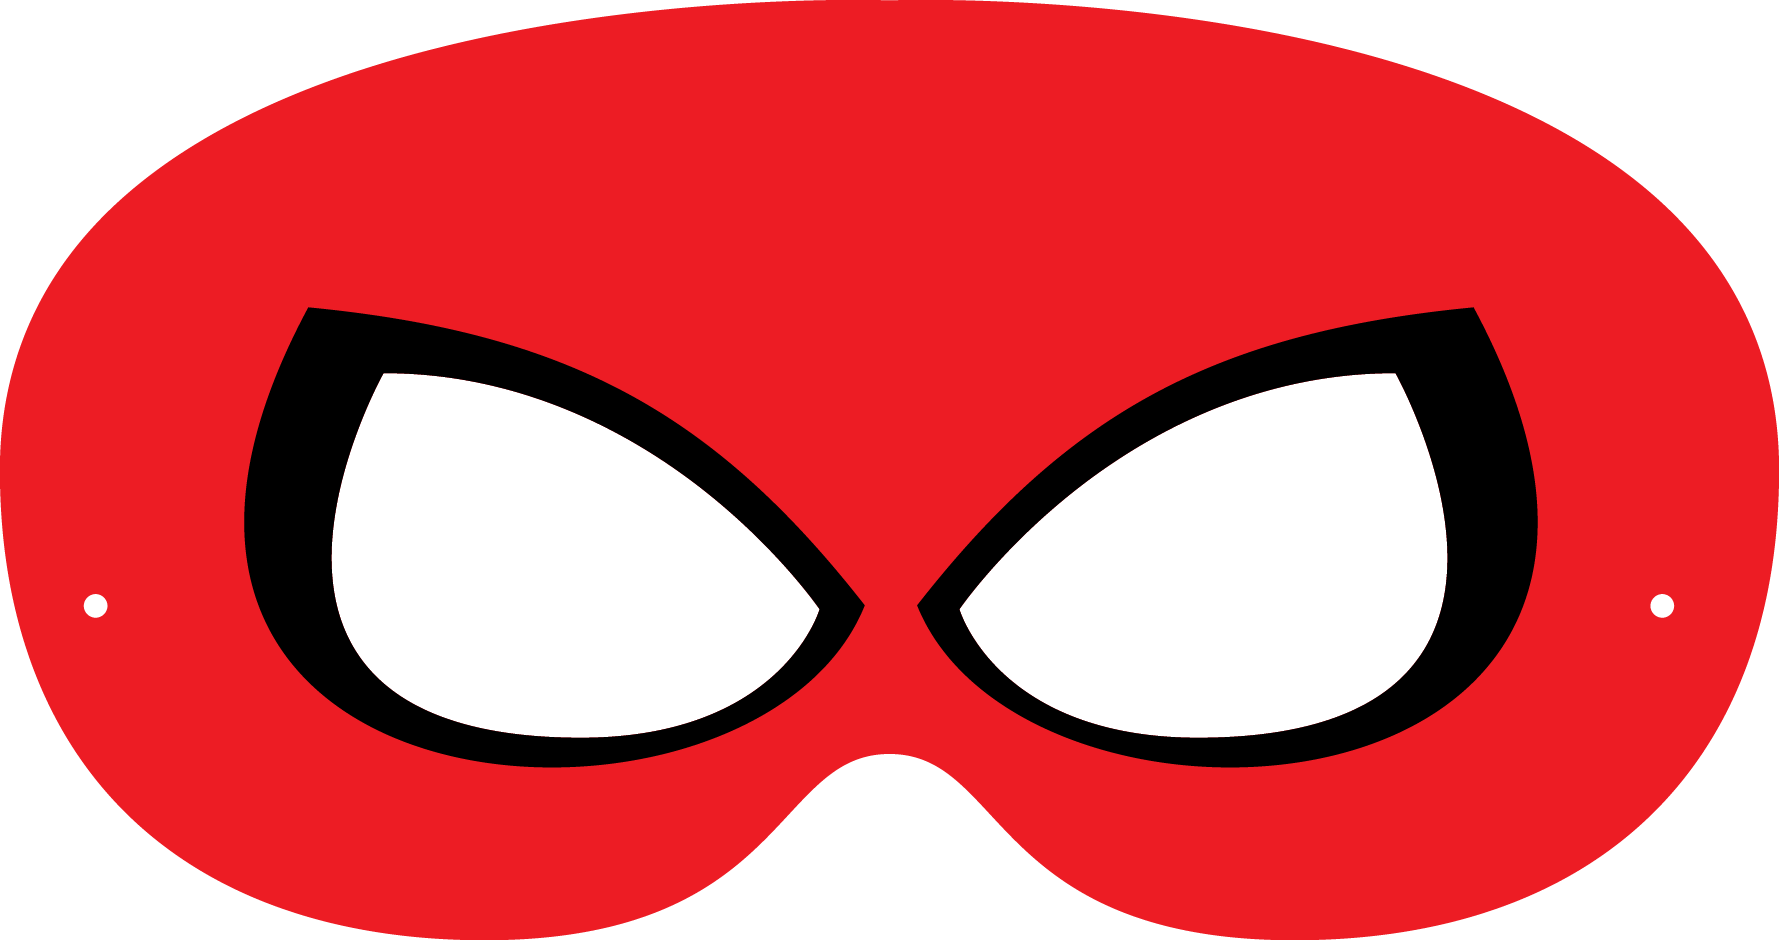 Super Hero Mask Template Free Download Best Super Hero Mask